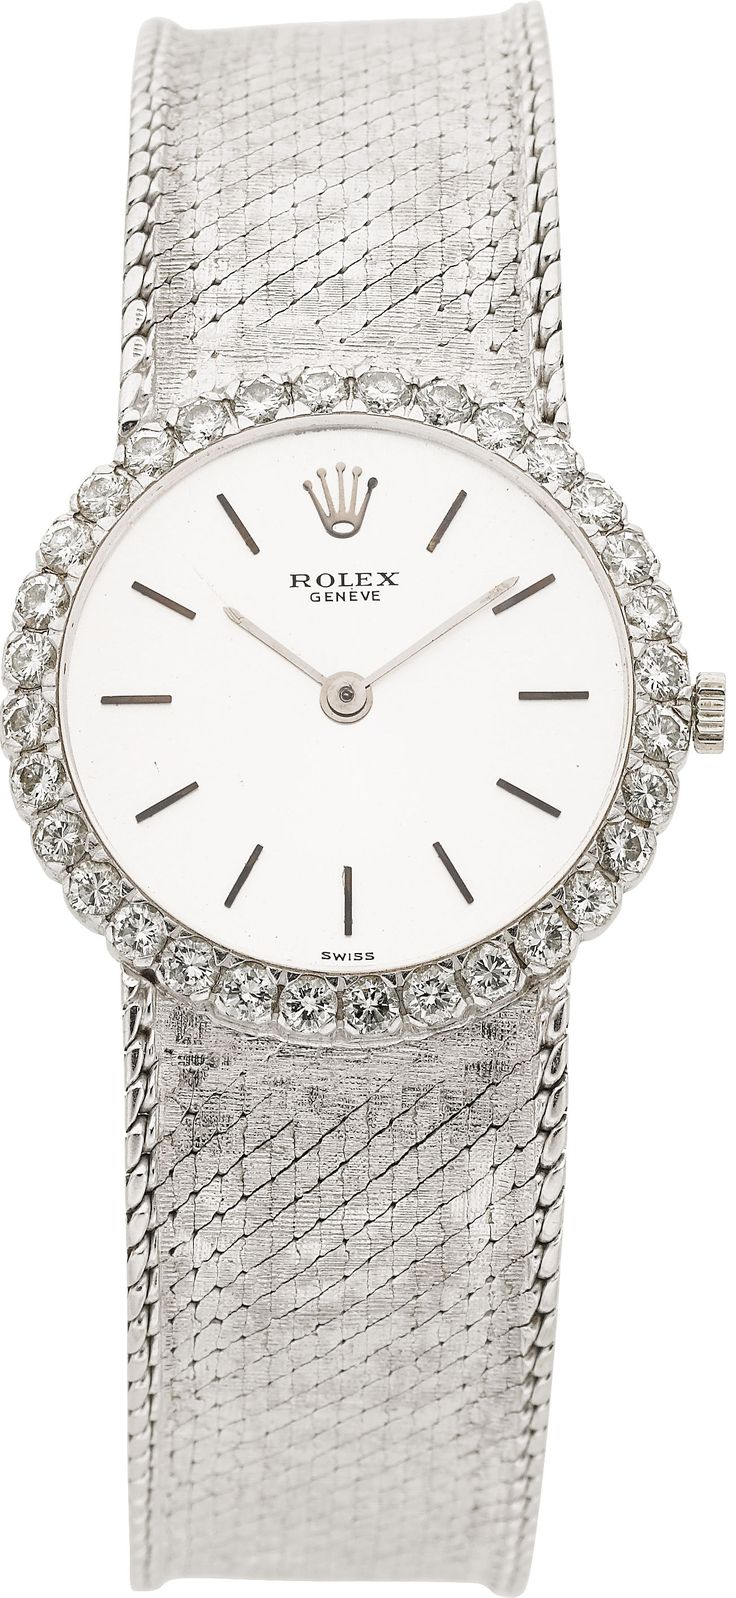 Rolex Lady's Diamond, White Gold Wristwatch, circa 1970. ... Estate | Lot #58985 | Heritage Auctions